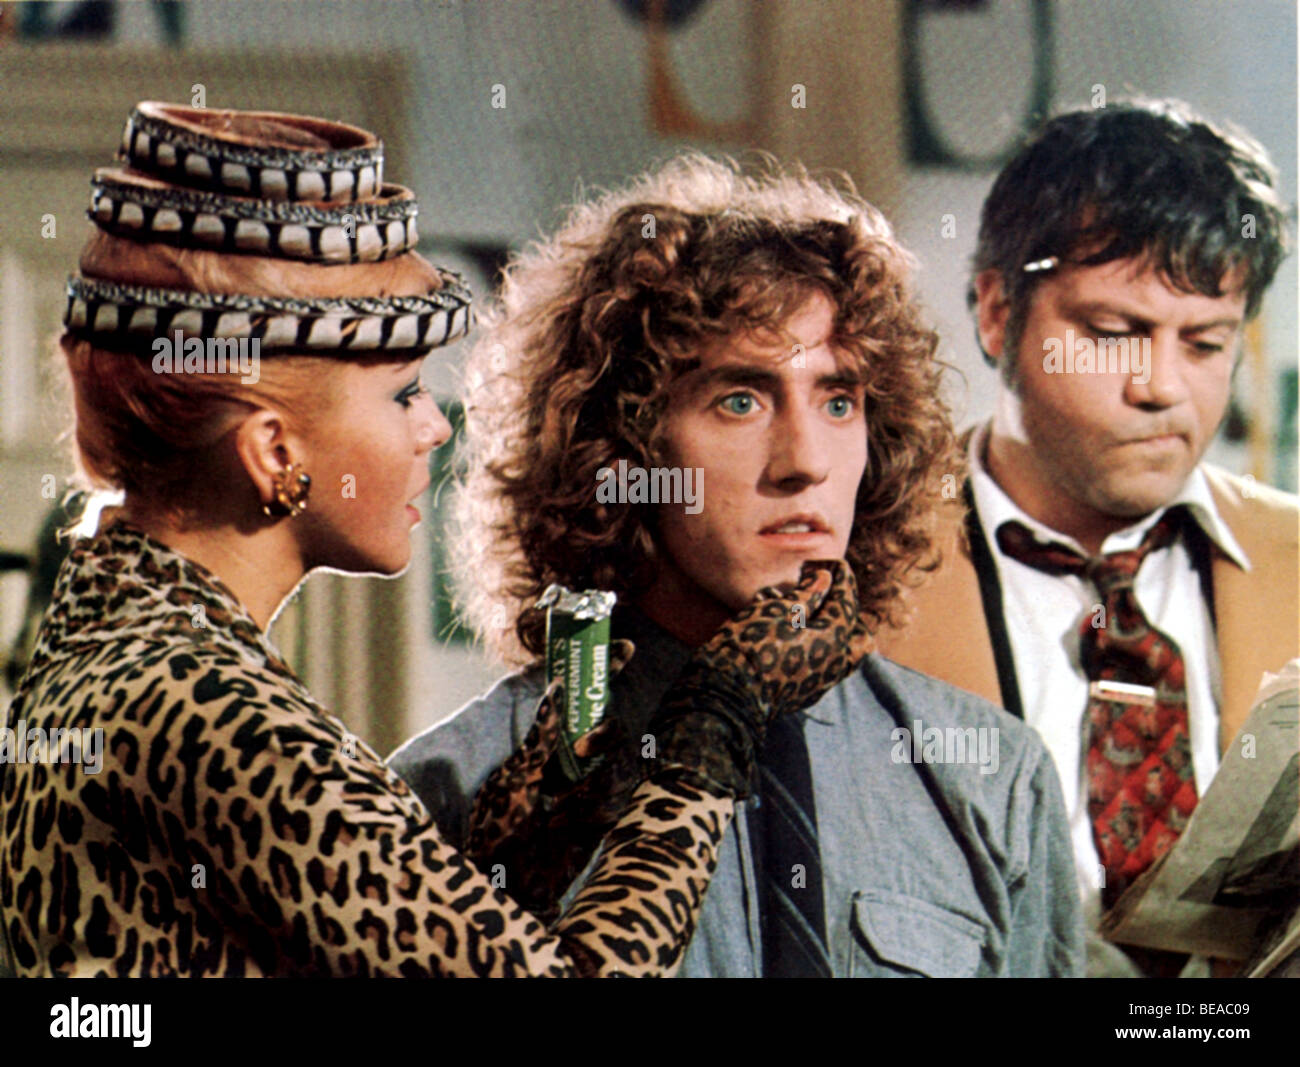 TOMMY  - 1975 Hemdale film with from left: Ann-Margret, Roger Daltry and Oliver Reed - Stock Image